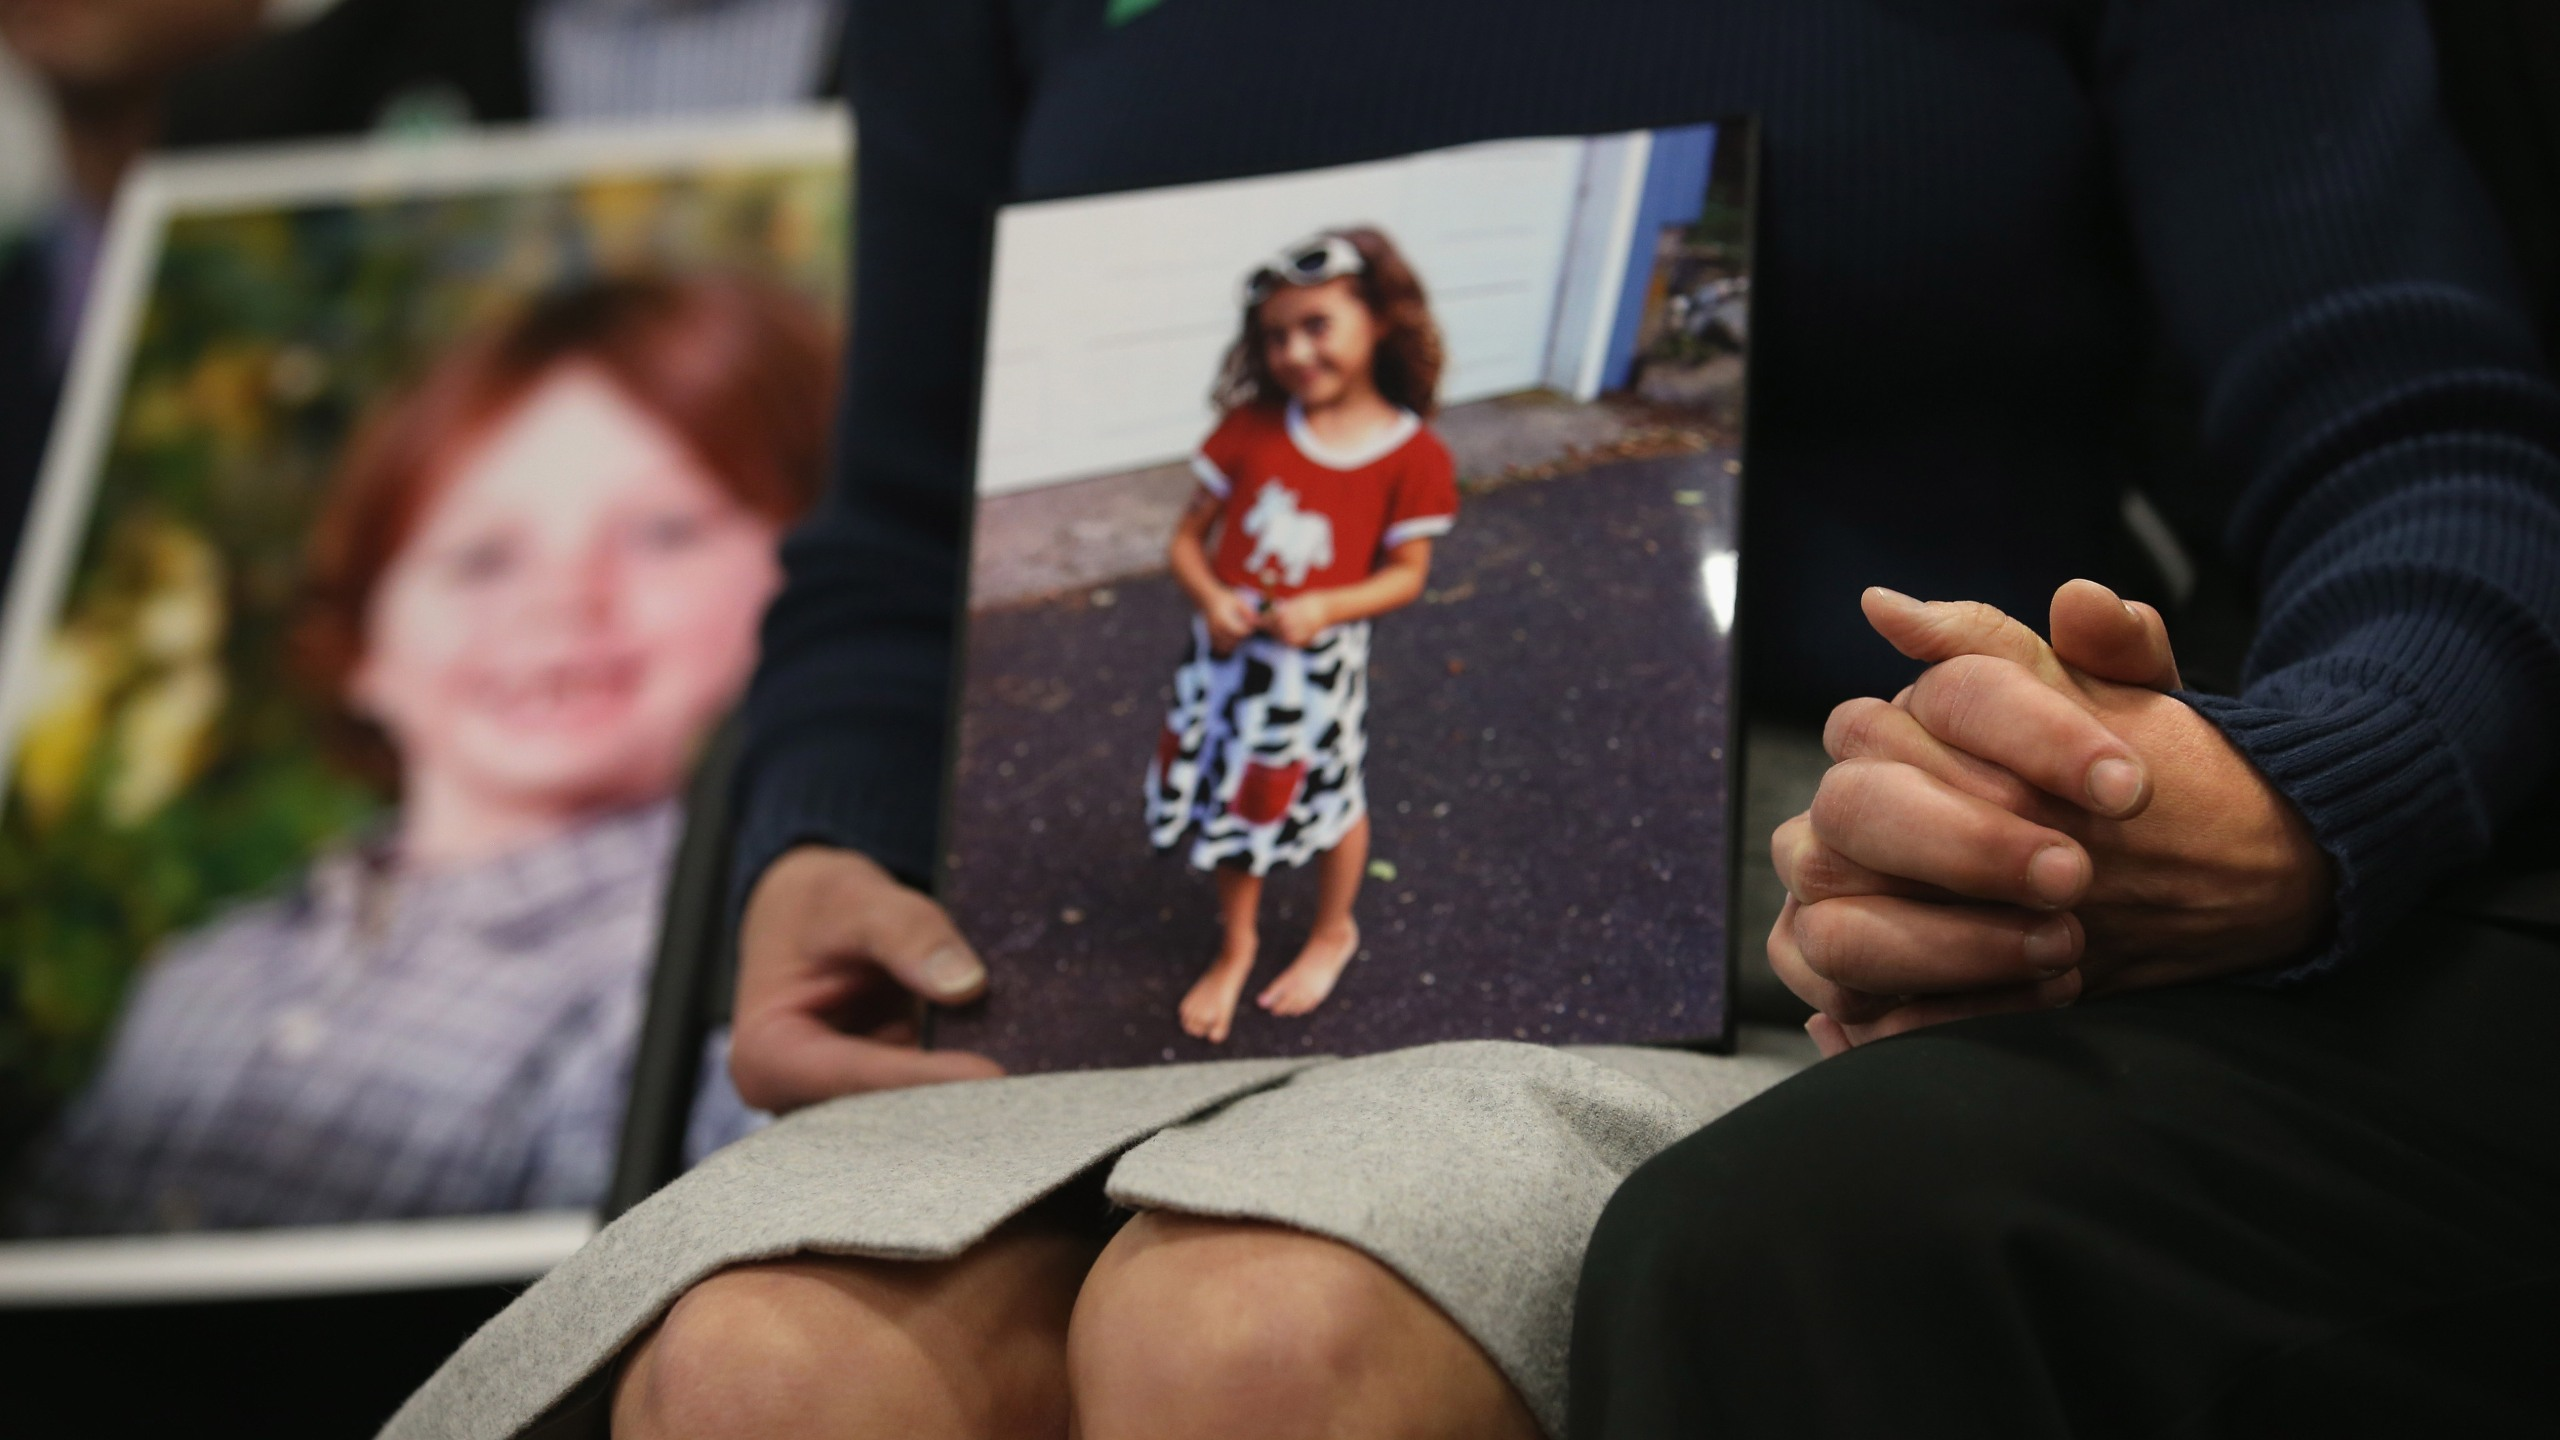 Parents of the Sandy Hook Elementary shooting victims hold hands on the one-month anniversary the massacre on Jan. 14, 2013 in Newtown, Connecticut. (Credit: John Moore/Getty Images)